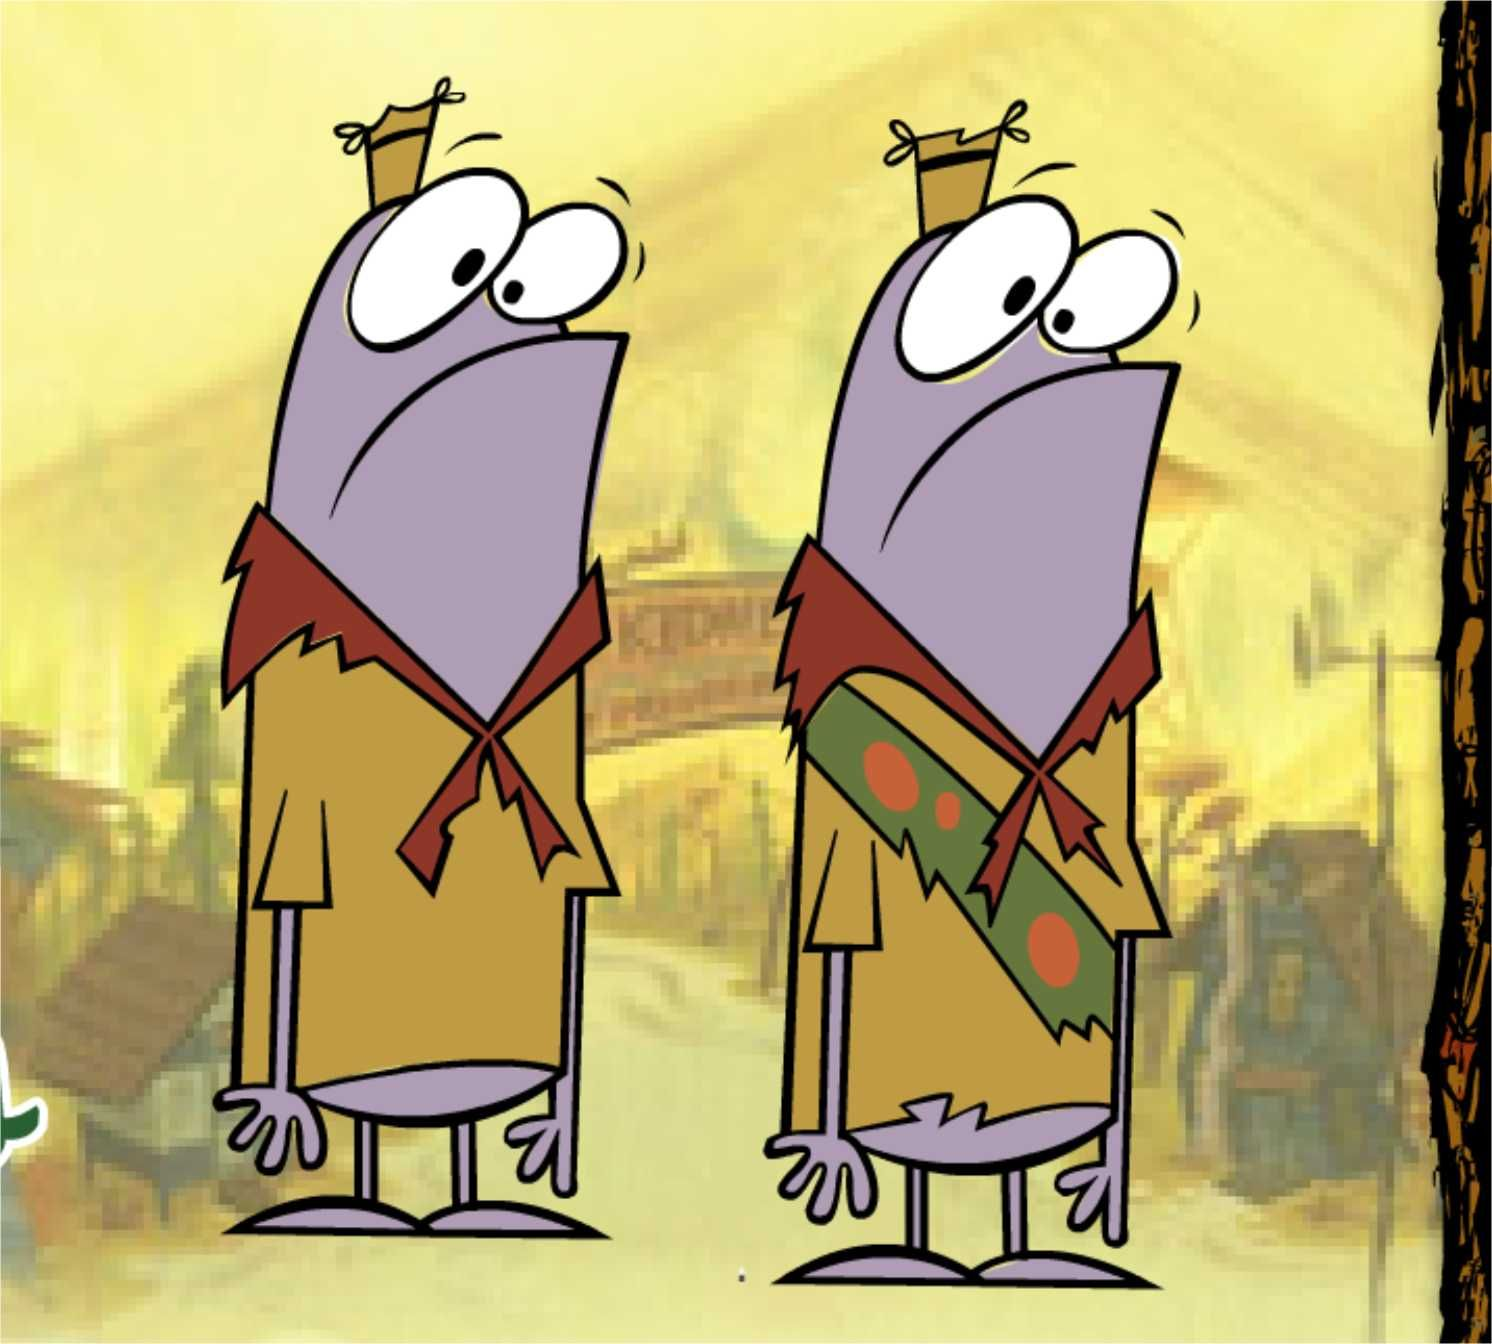 Camp Lazlo Twins Rhino And Dile Omg These Guys Are Awesome